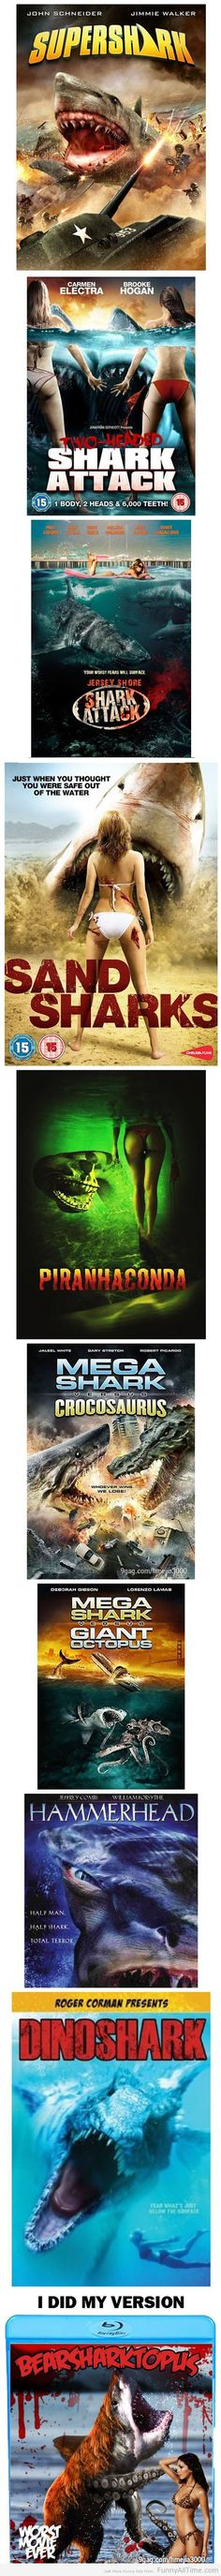 http://www.funnyalltime.com/who-is-making-these-shark-movies/  Who is making these shark movies